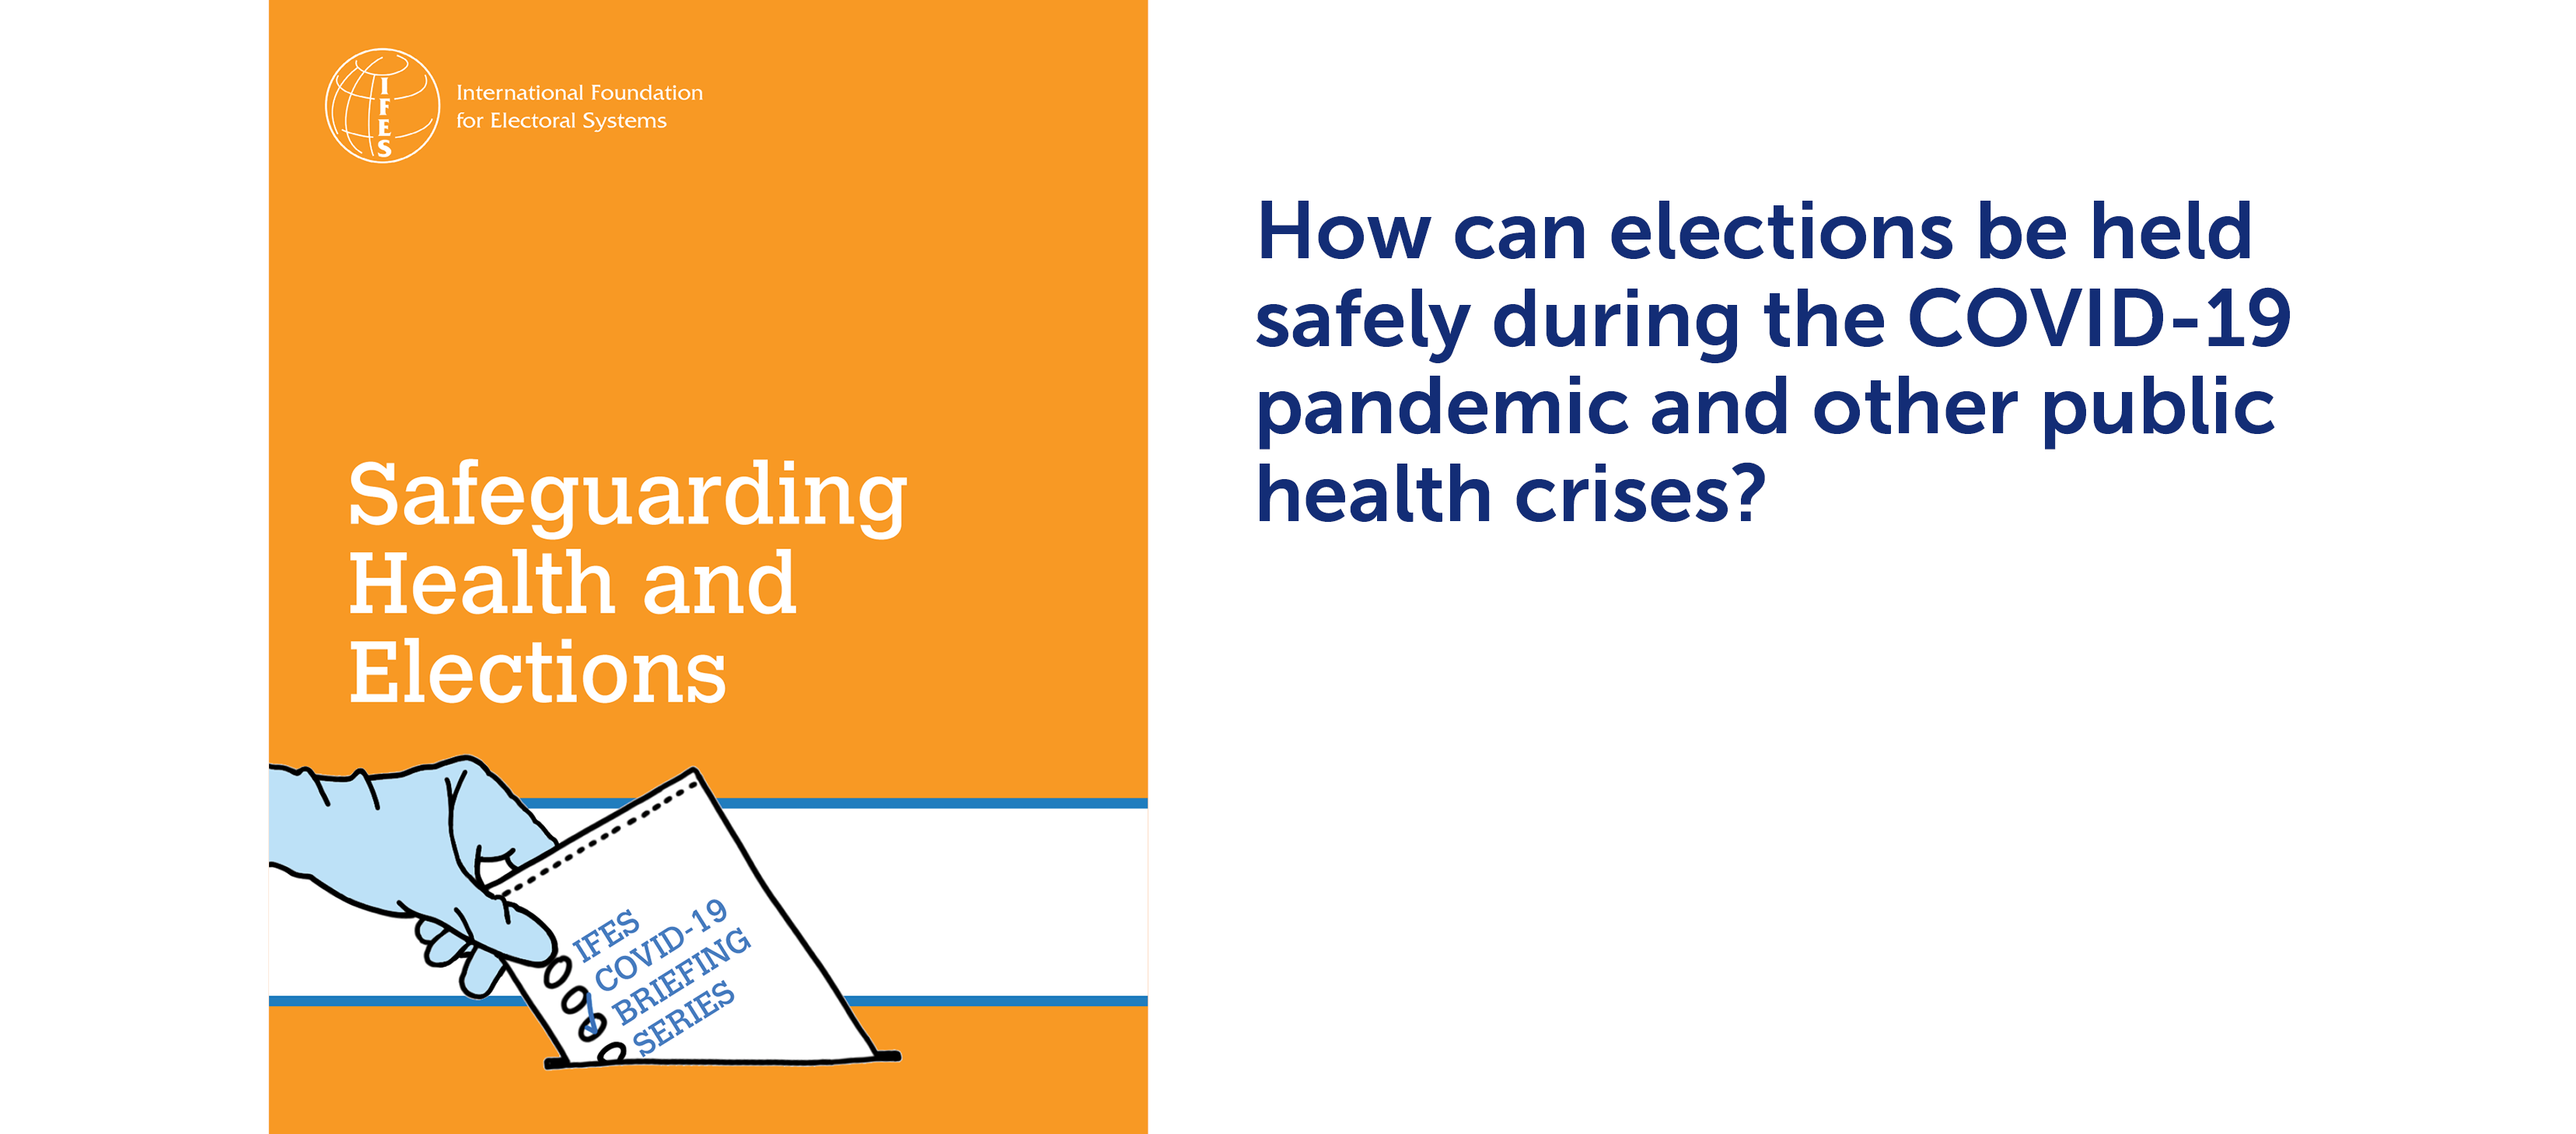 """Paper Cover of """"Safeguarding Health and Elections"""" + text: """"How can elections be held safely during the COVID-19 pandemic and other public health crises?"""""""